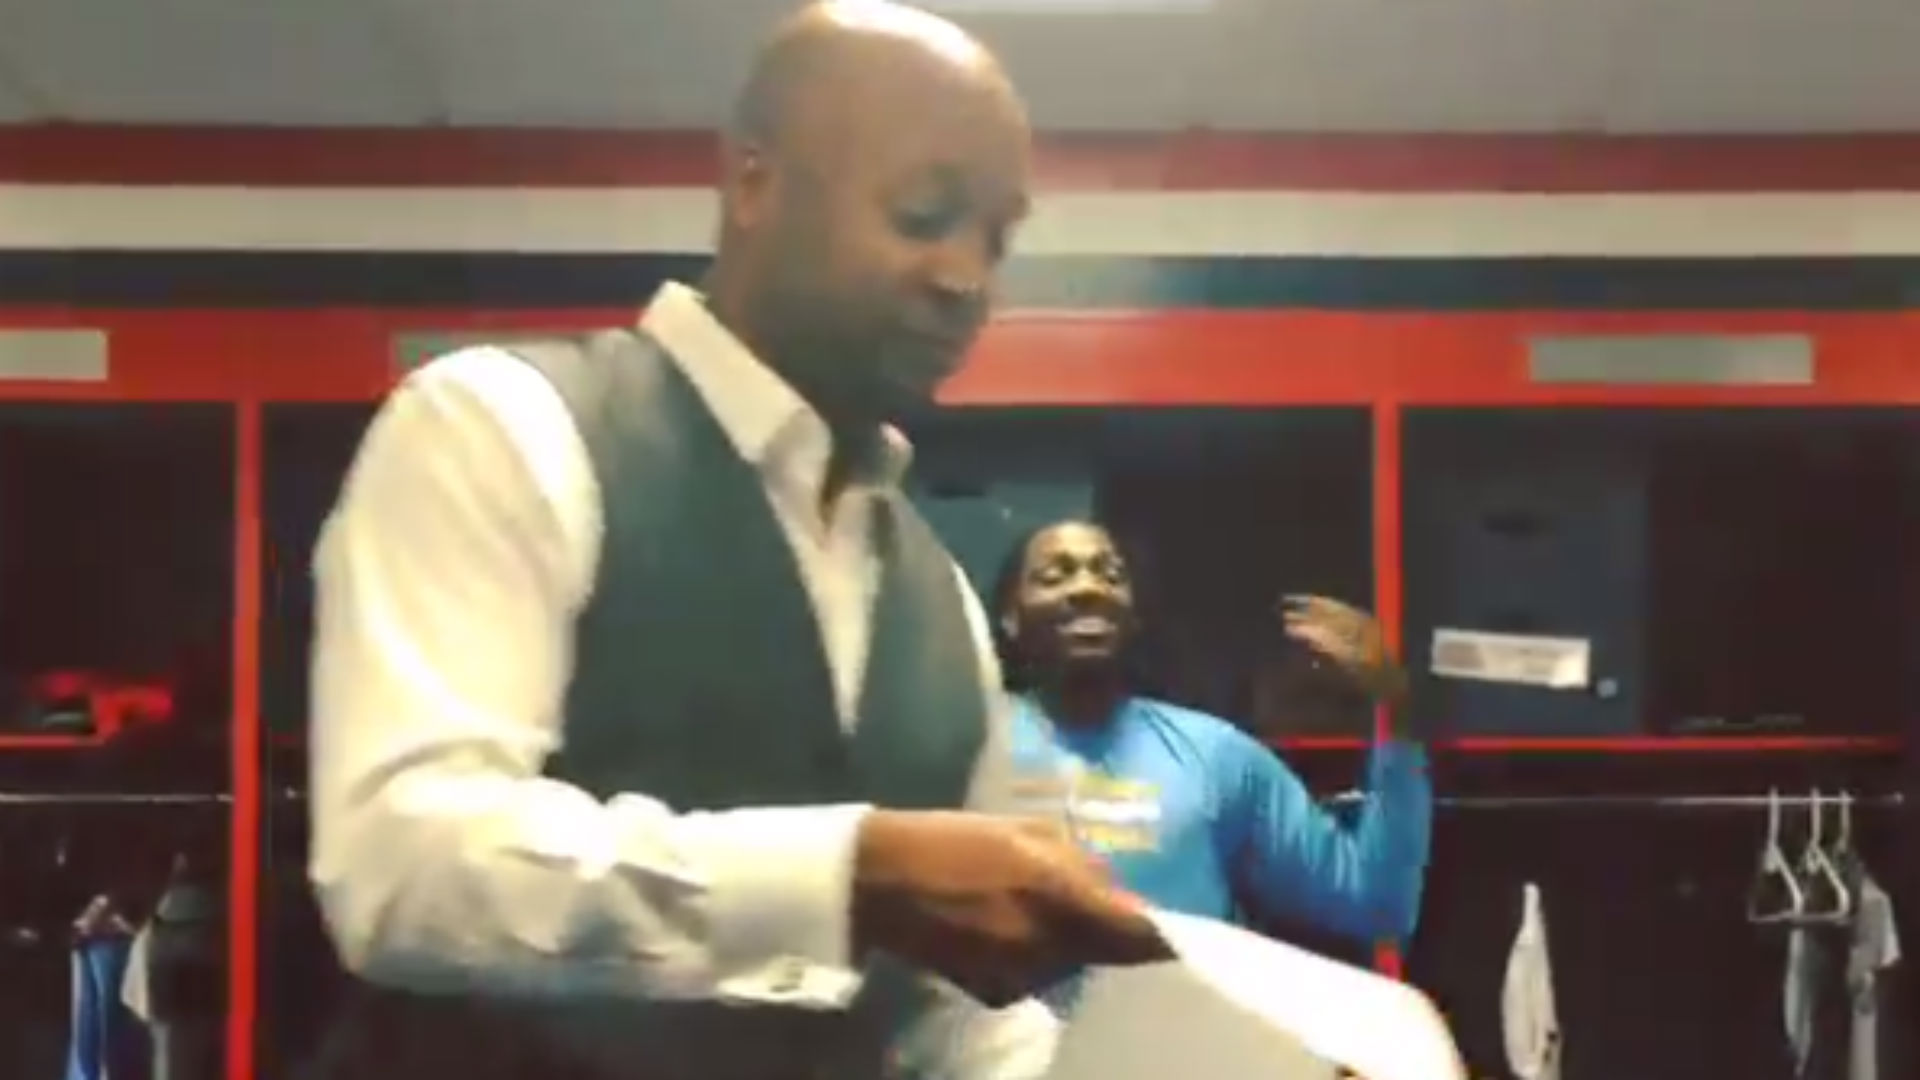 Ty Lawson posts video of Brian Shaw rapping pregame scouting report to Nuggets